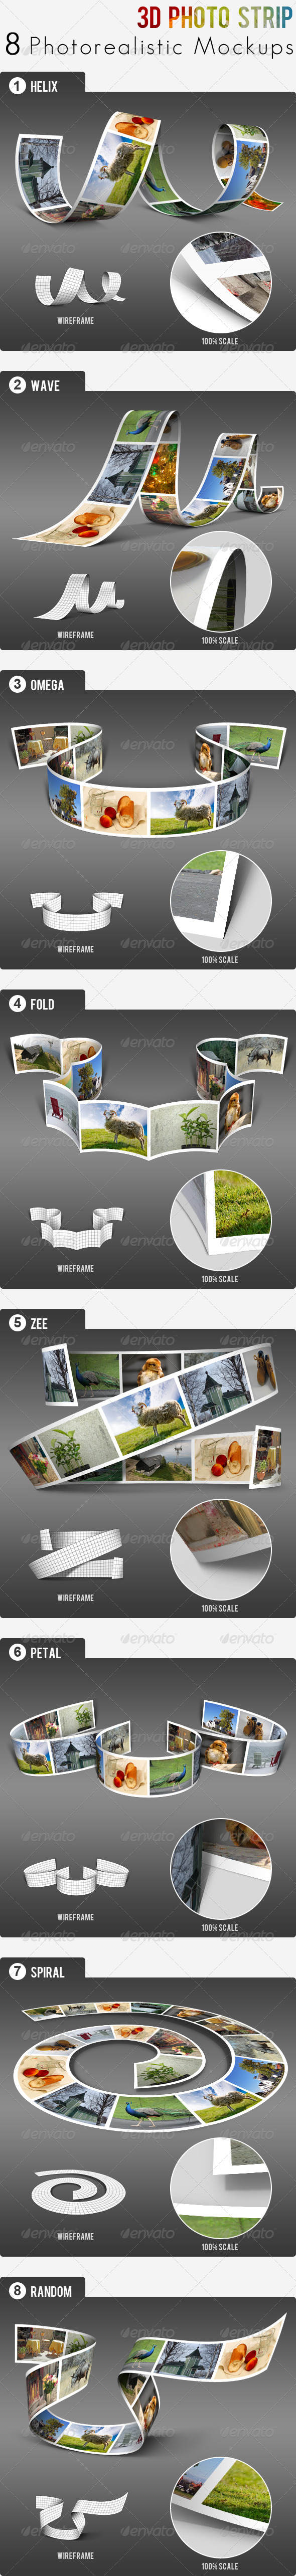 3D Photo Strip - Photorealistic Mockups - Miscellaneous Product Mock-Ups